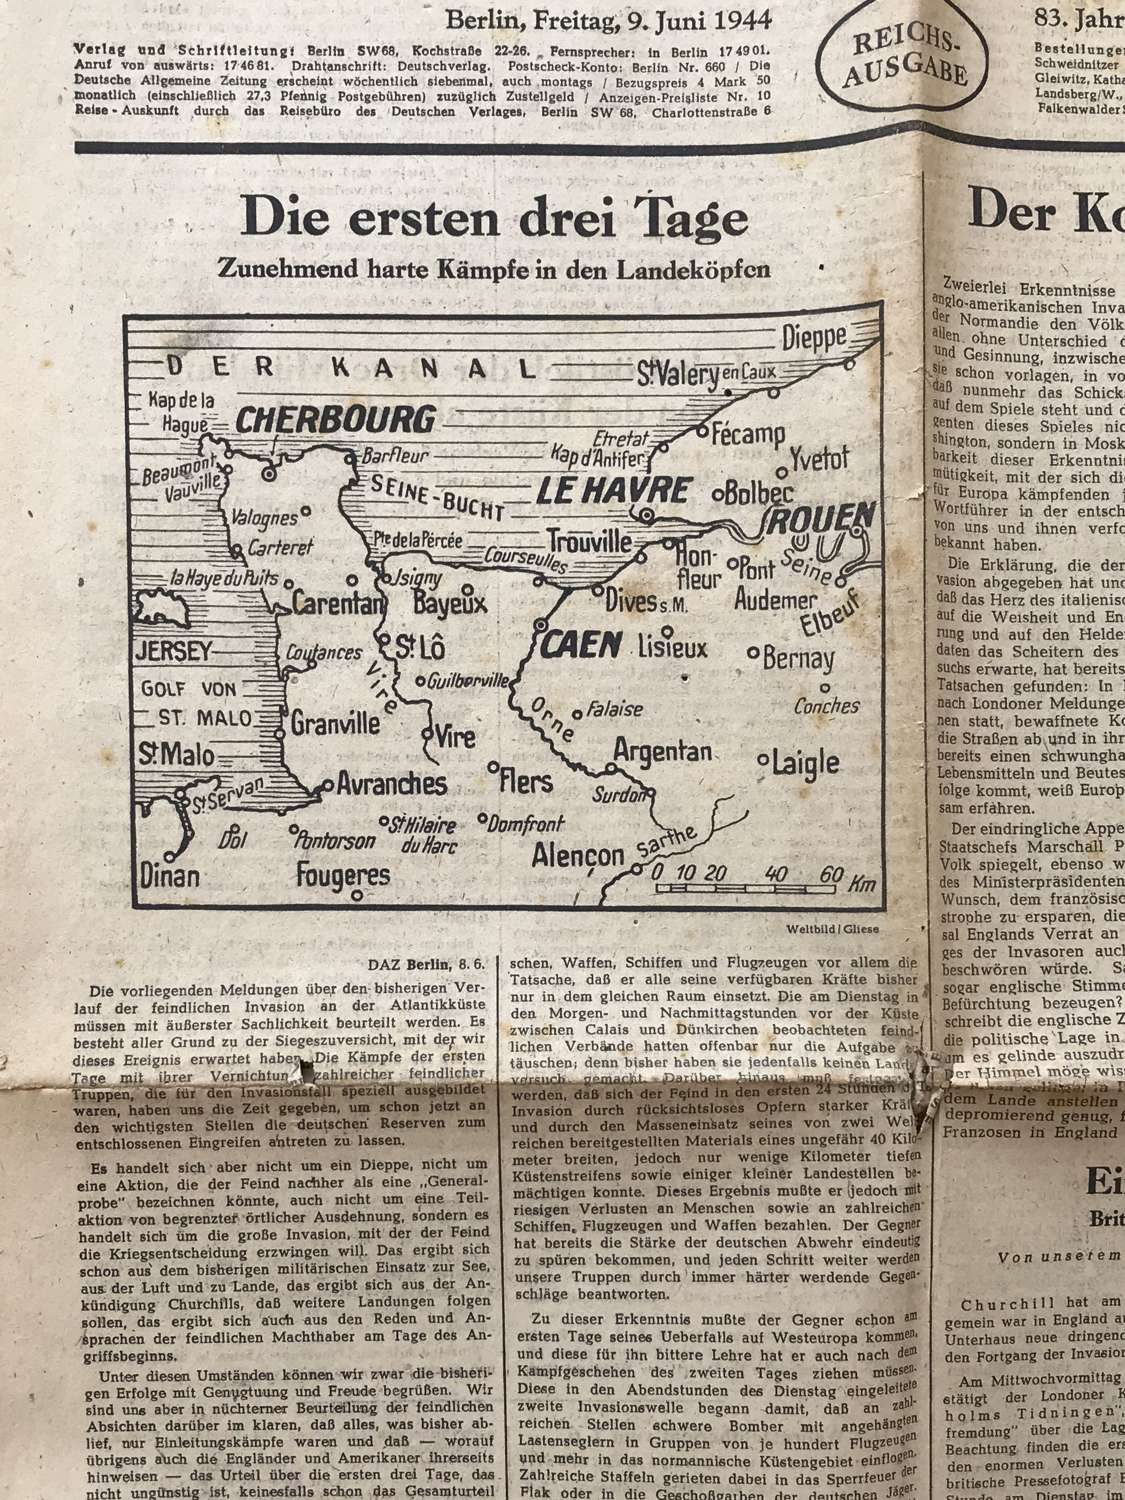 German newspaper announcing D Day